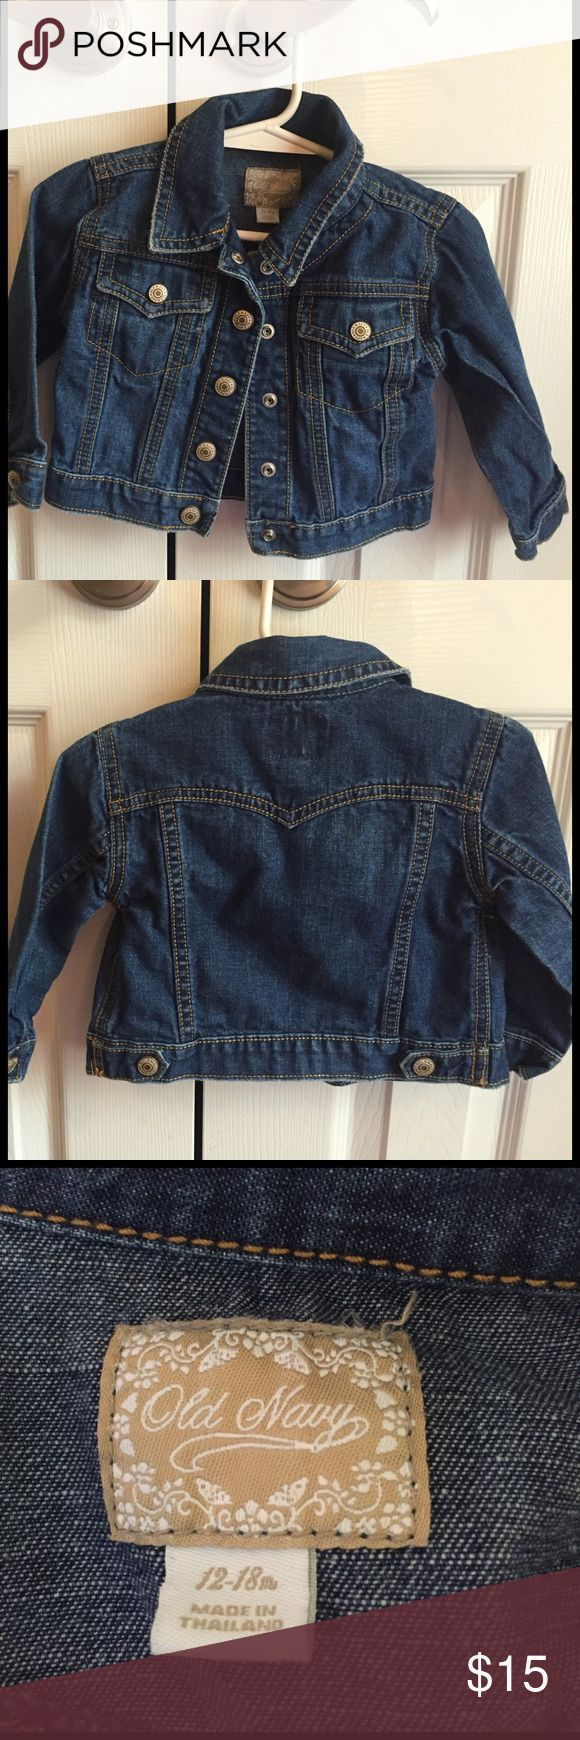 Baby 18 month Old Navy Jean Jacket Excellent Condition! Old Navy Jackets & Coats Jean Jackets